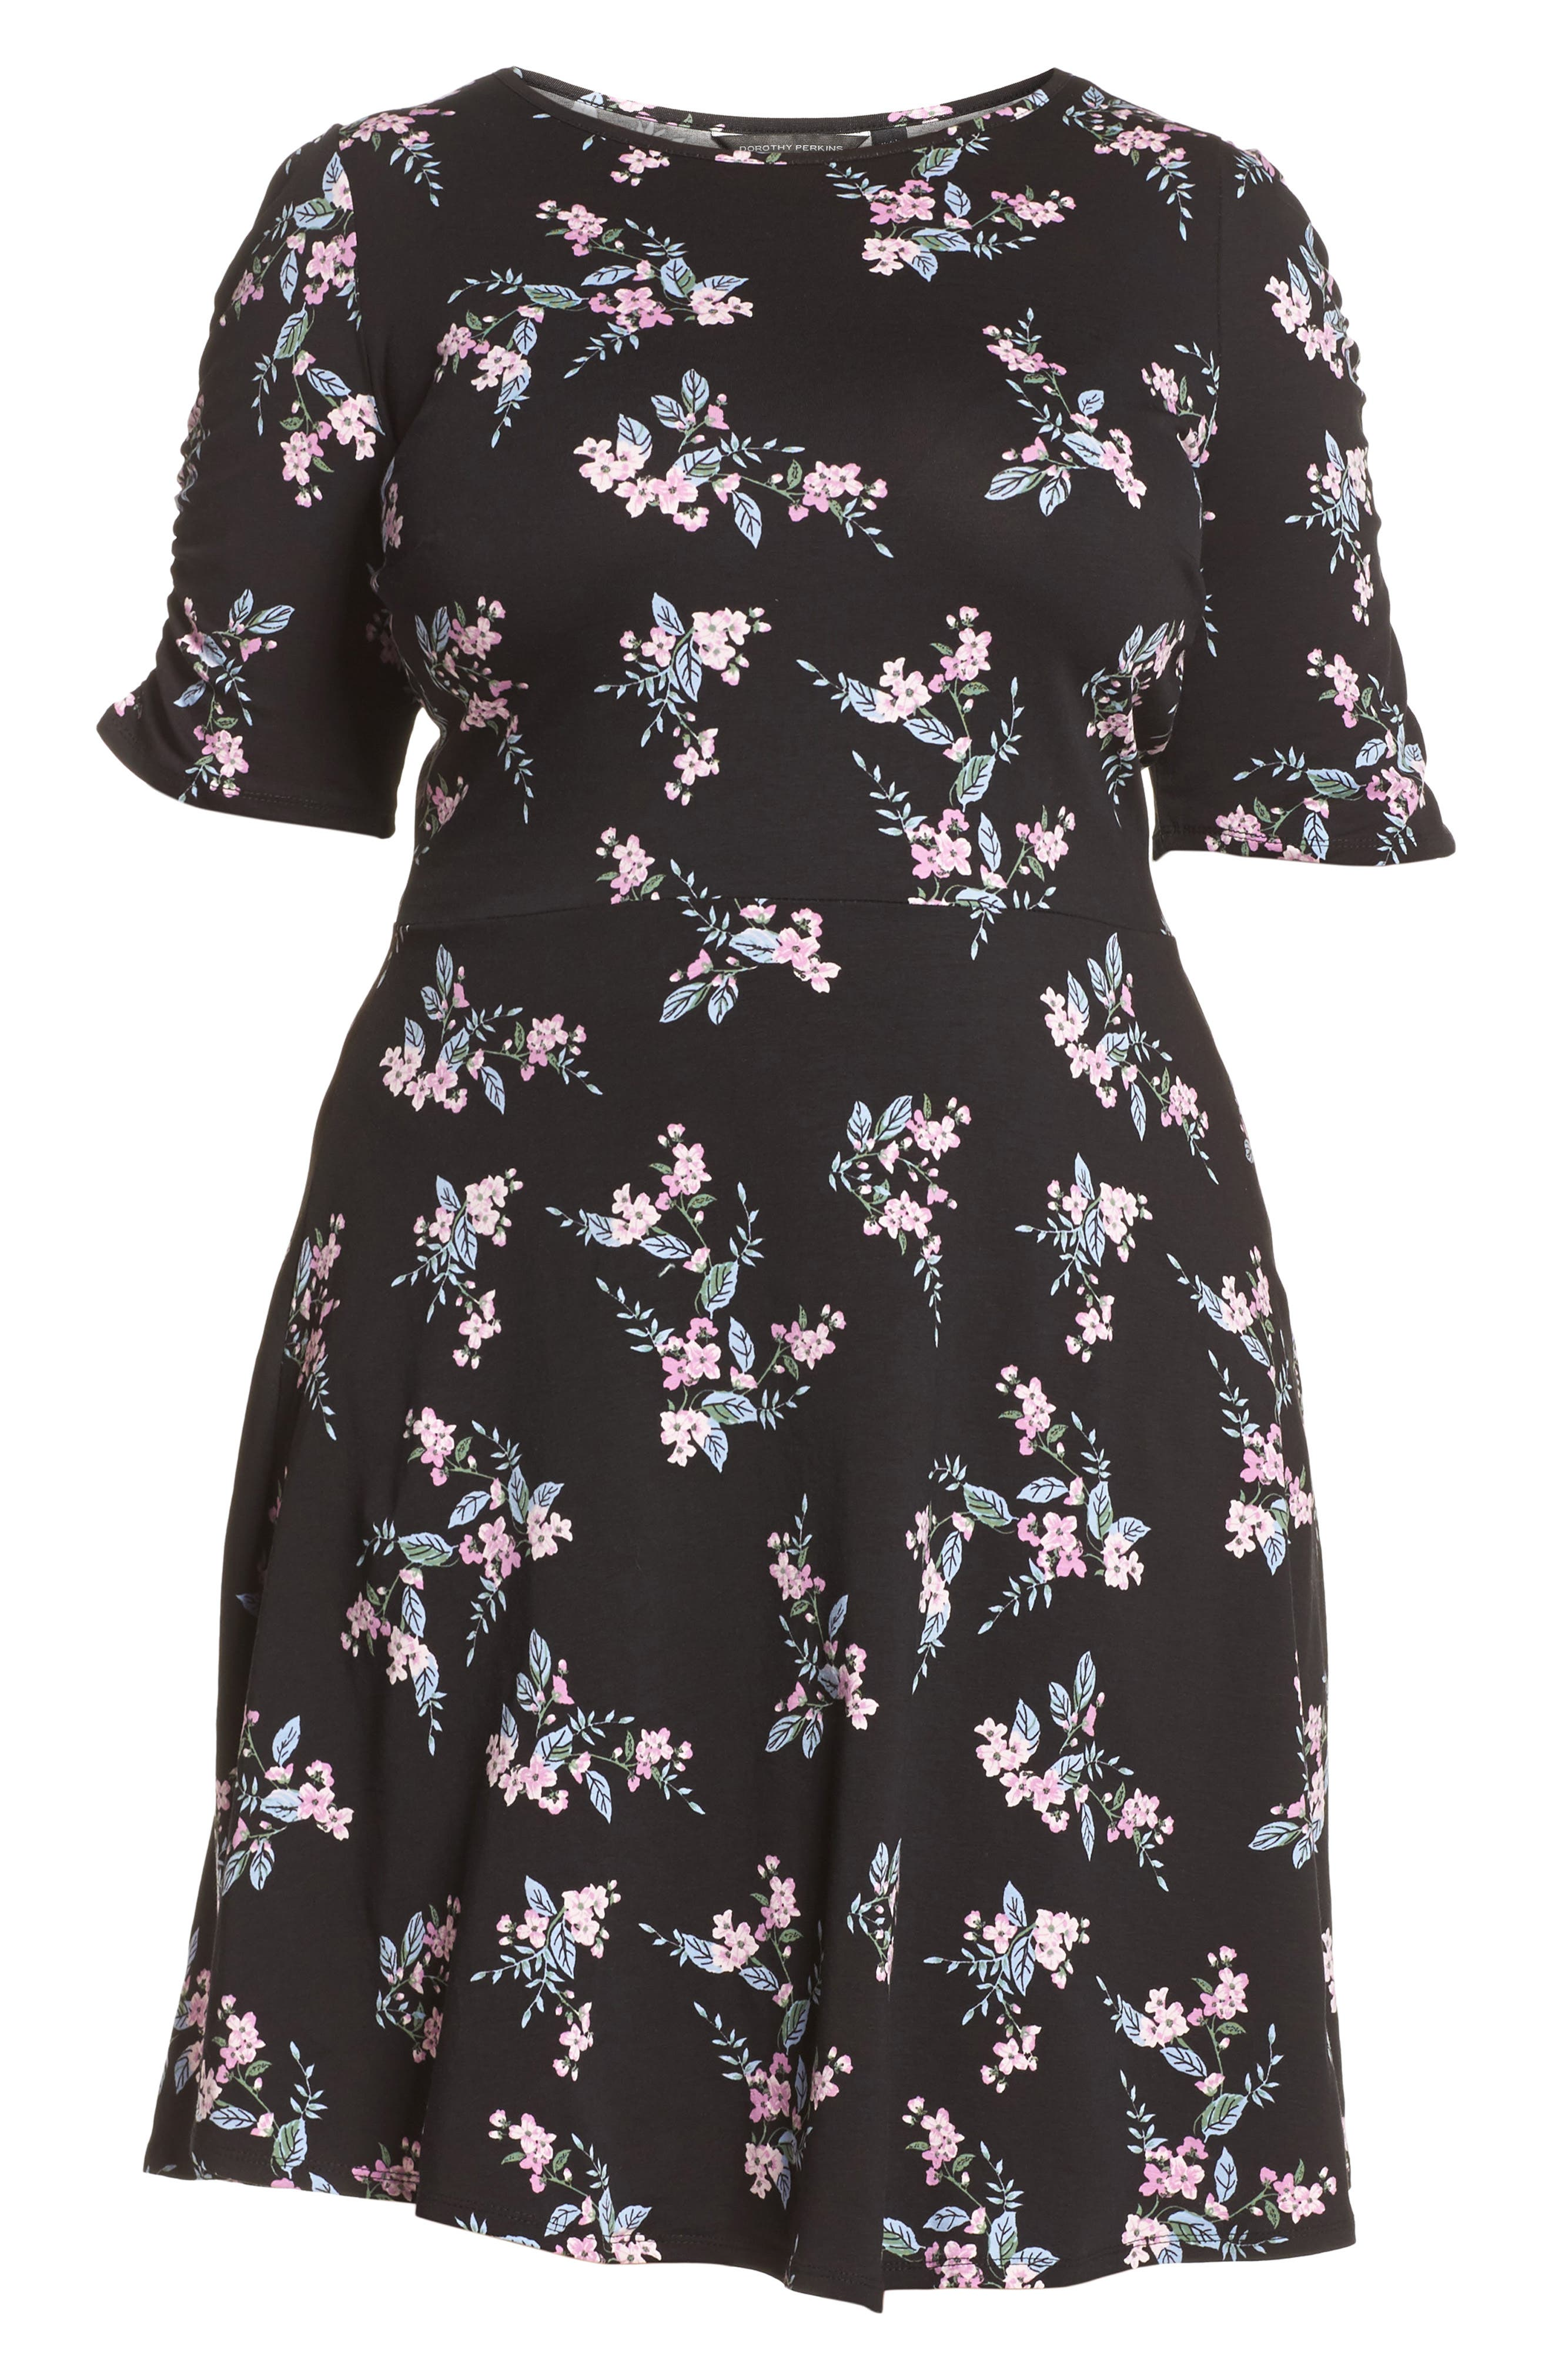 Floral Print Fit & Flare Dress,                             Alternate thumbnail 6, color,                             Black